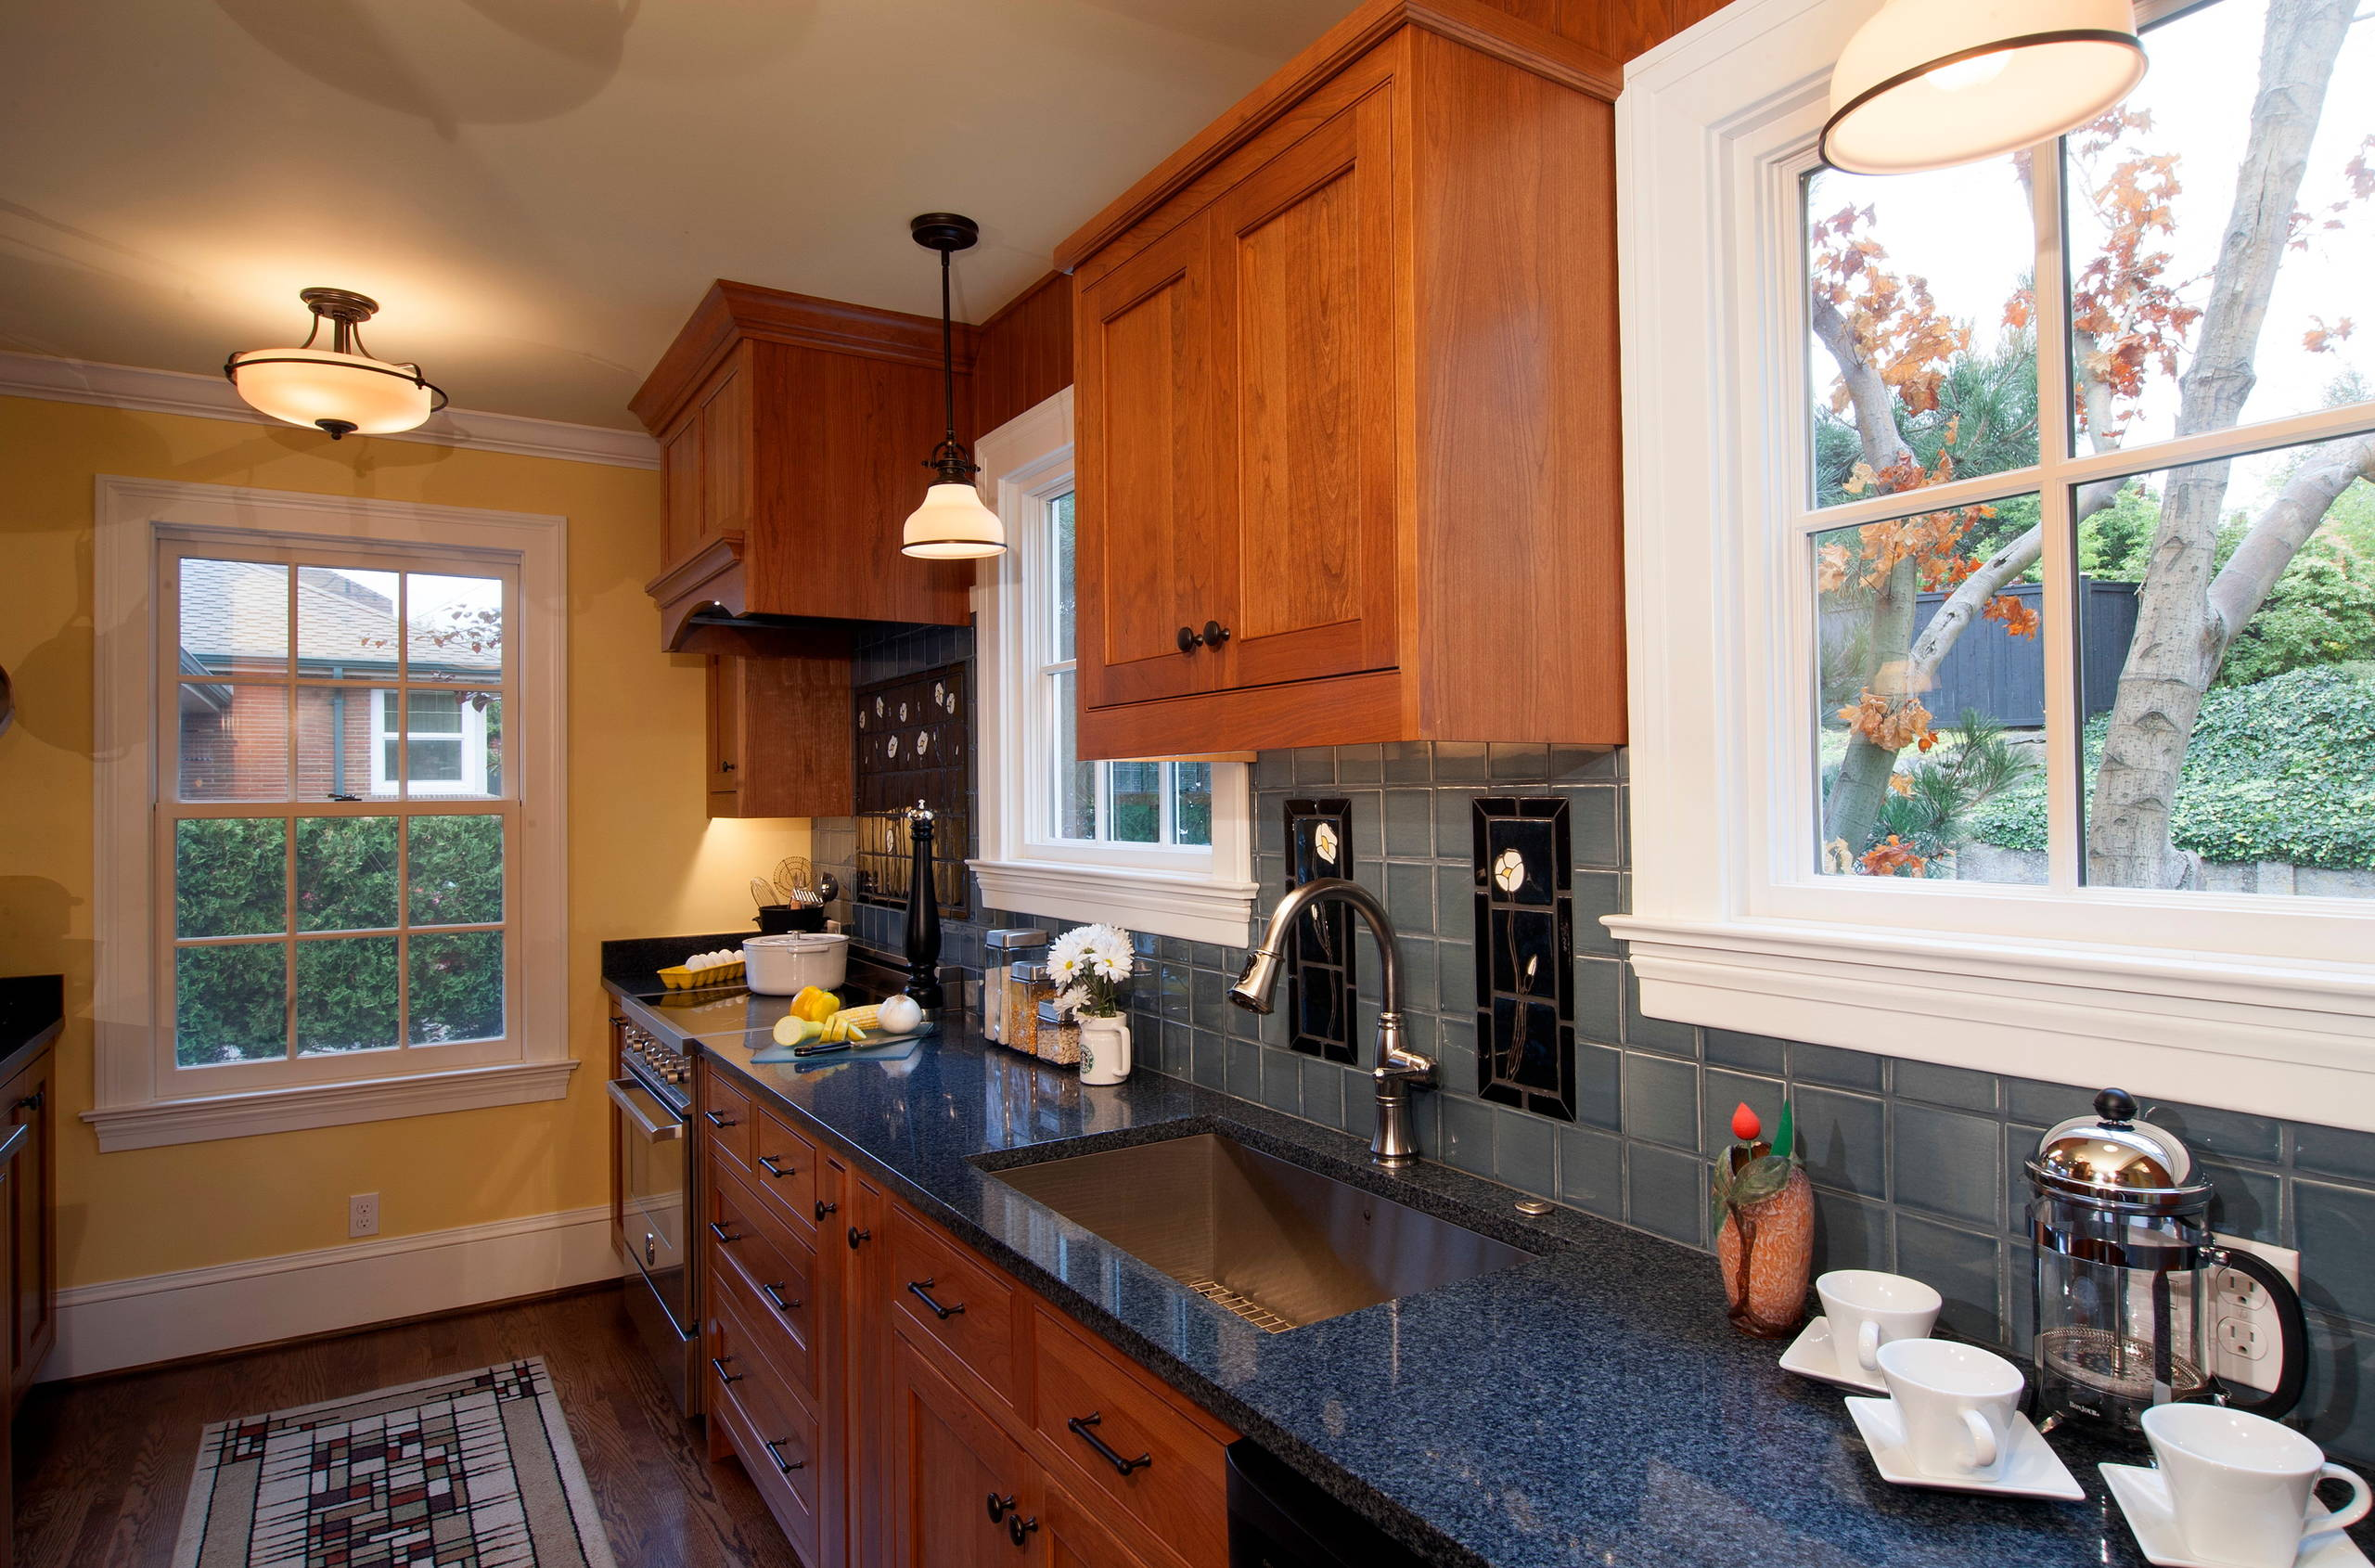 West Seattle Kitchen Remodel - Birth Year 1925